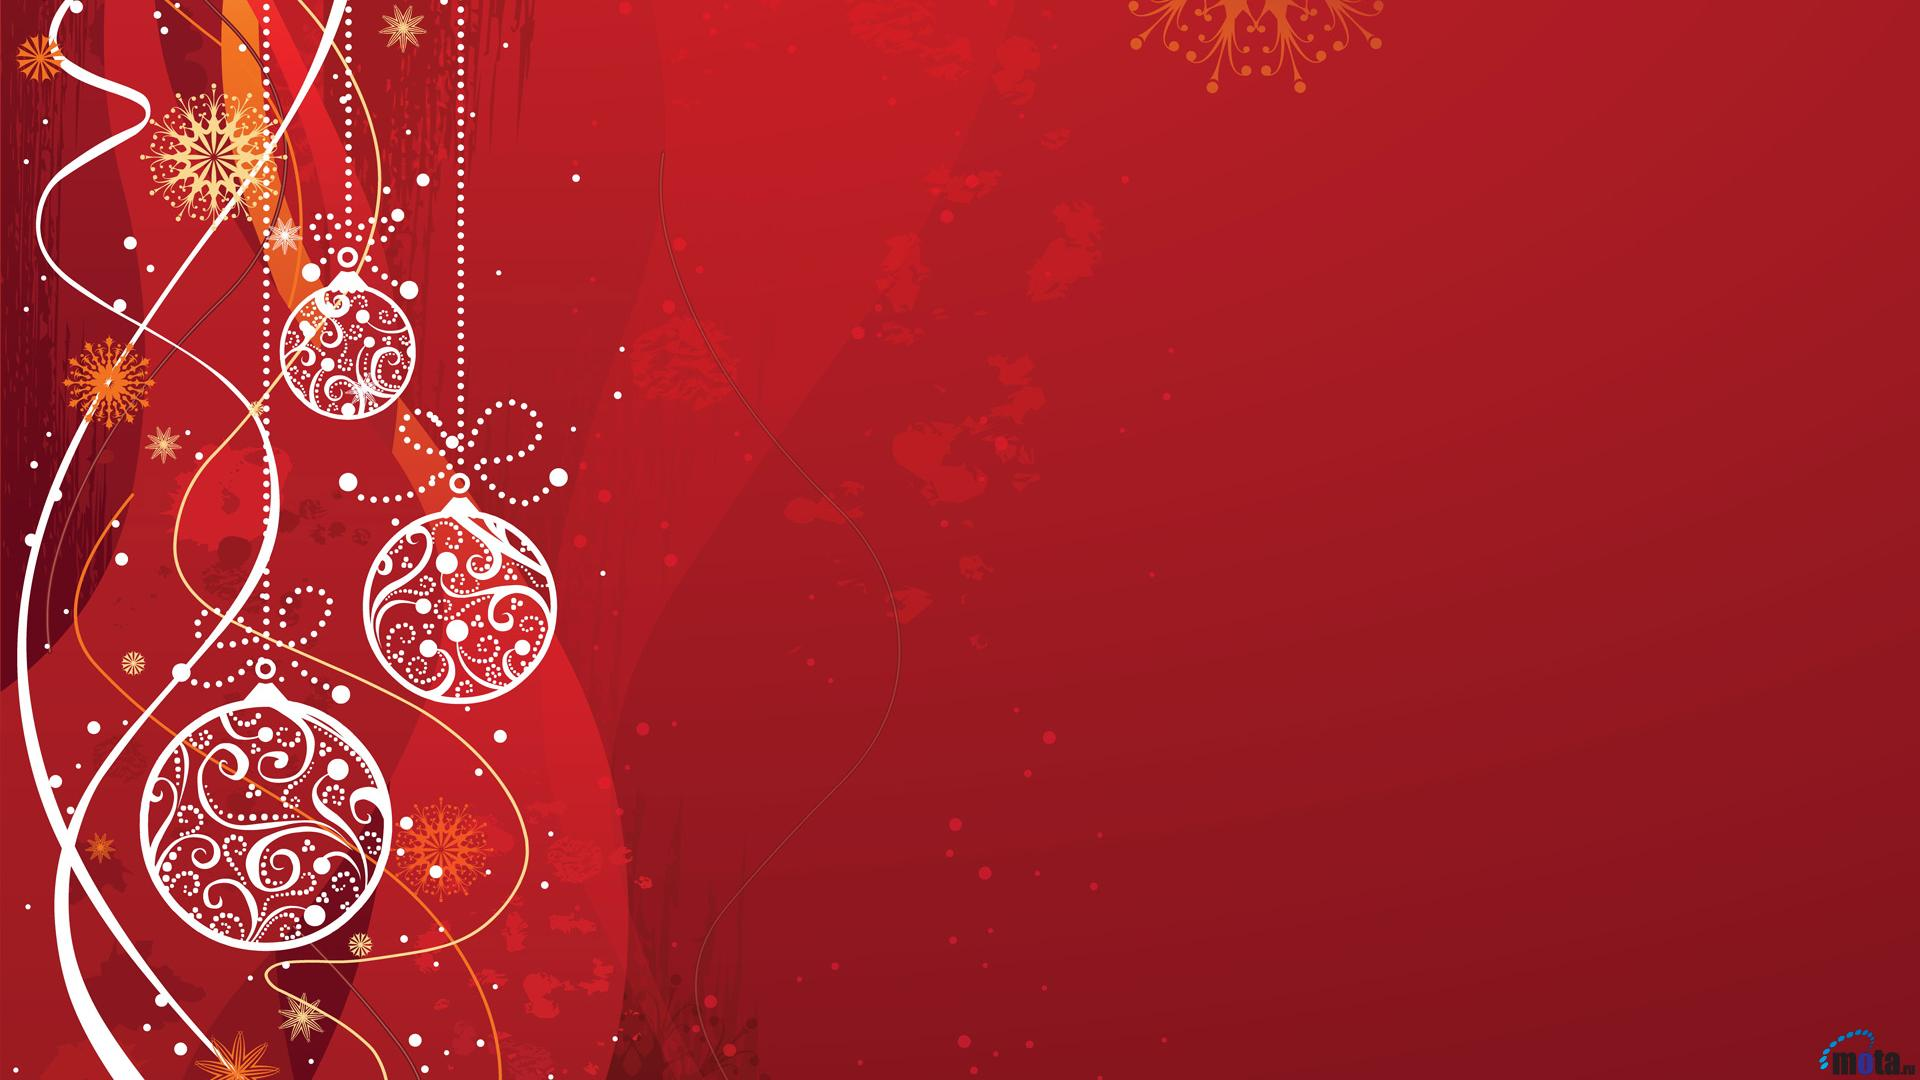 Free Download Wallpapers Christmas Resolution Wallpaper Red 1920x1080 1920x1080 For Your Desktop Mobile Tablet Explore 74 Red Christmas Backgrounds Red Christmas Wallpapers